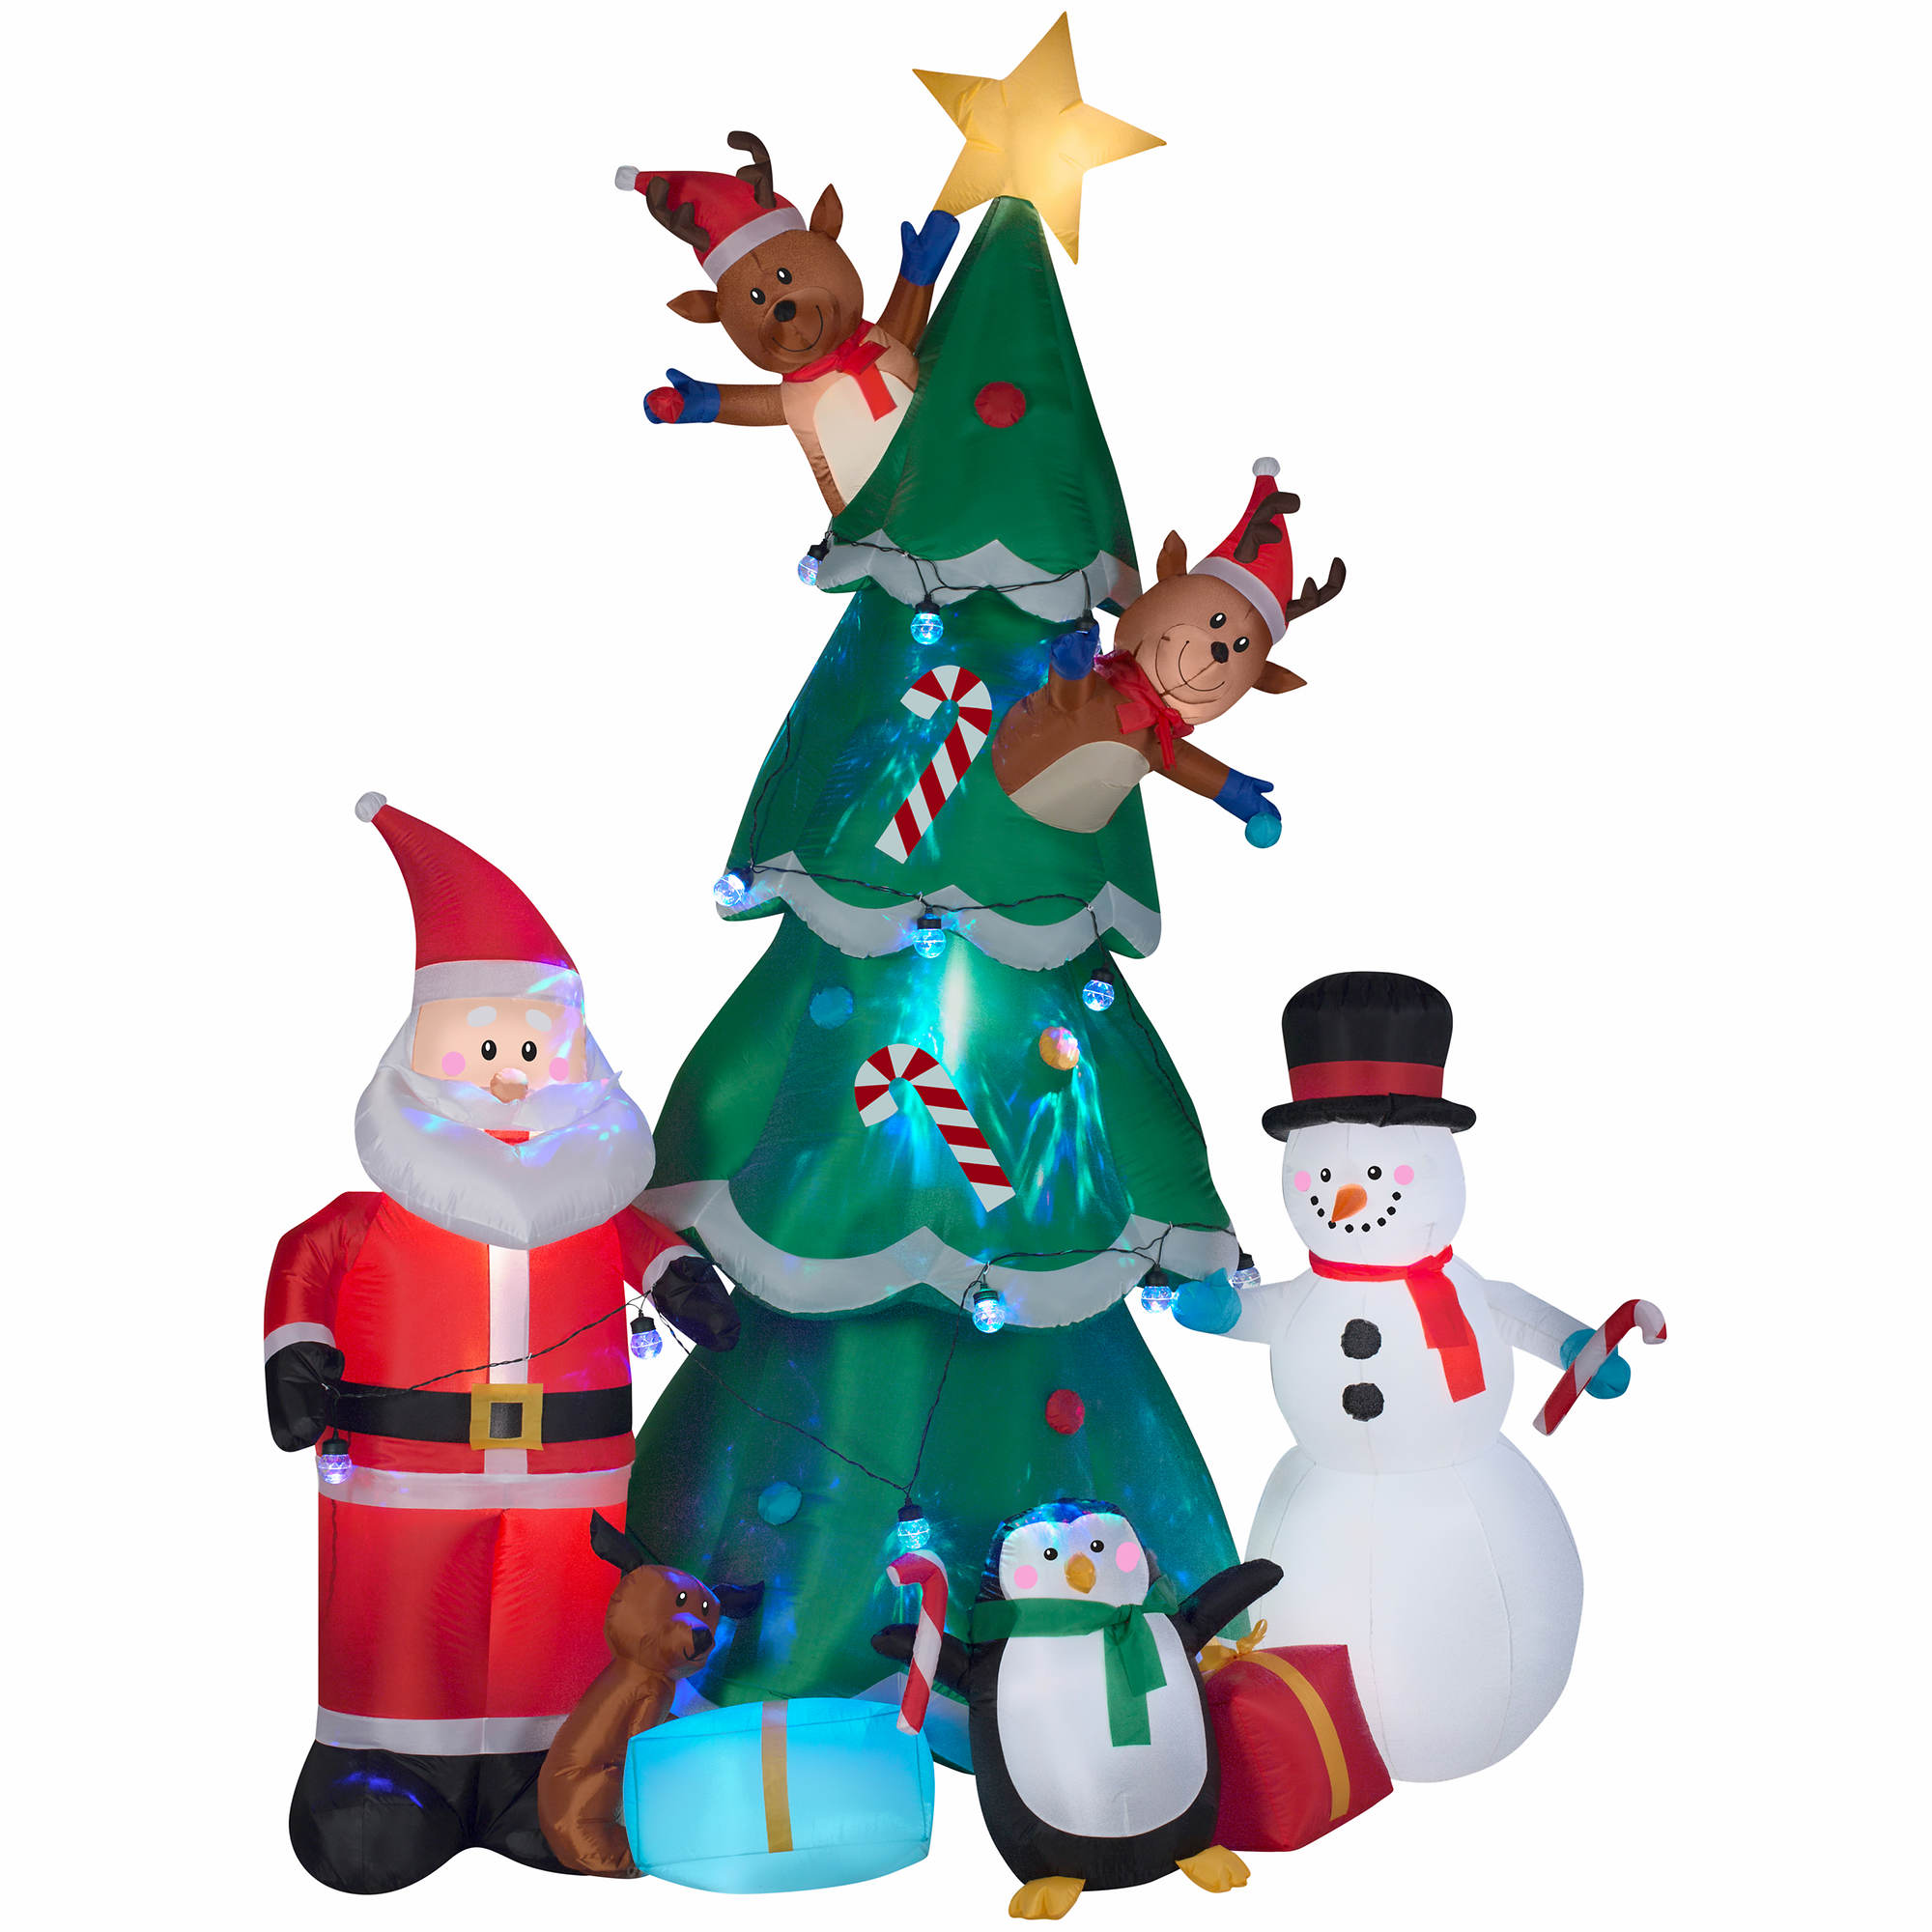 wallpapers best animated decorations pine decor pinterest pin hd cones cone christmas fir